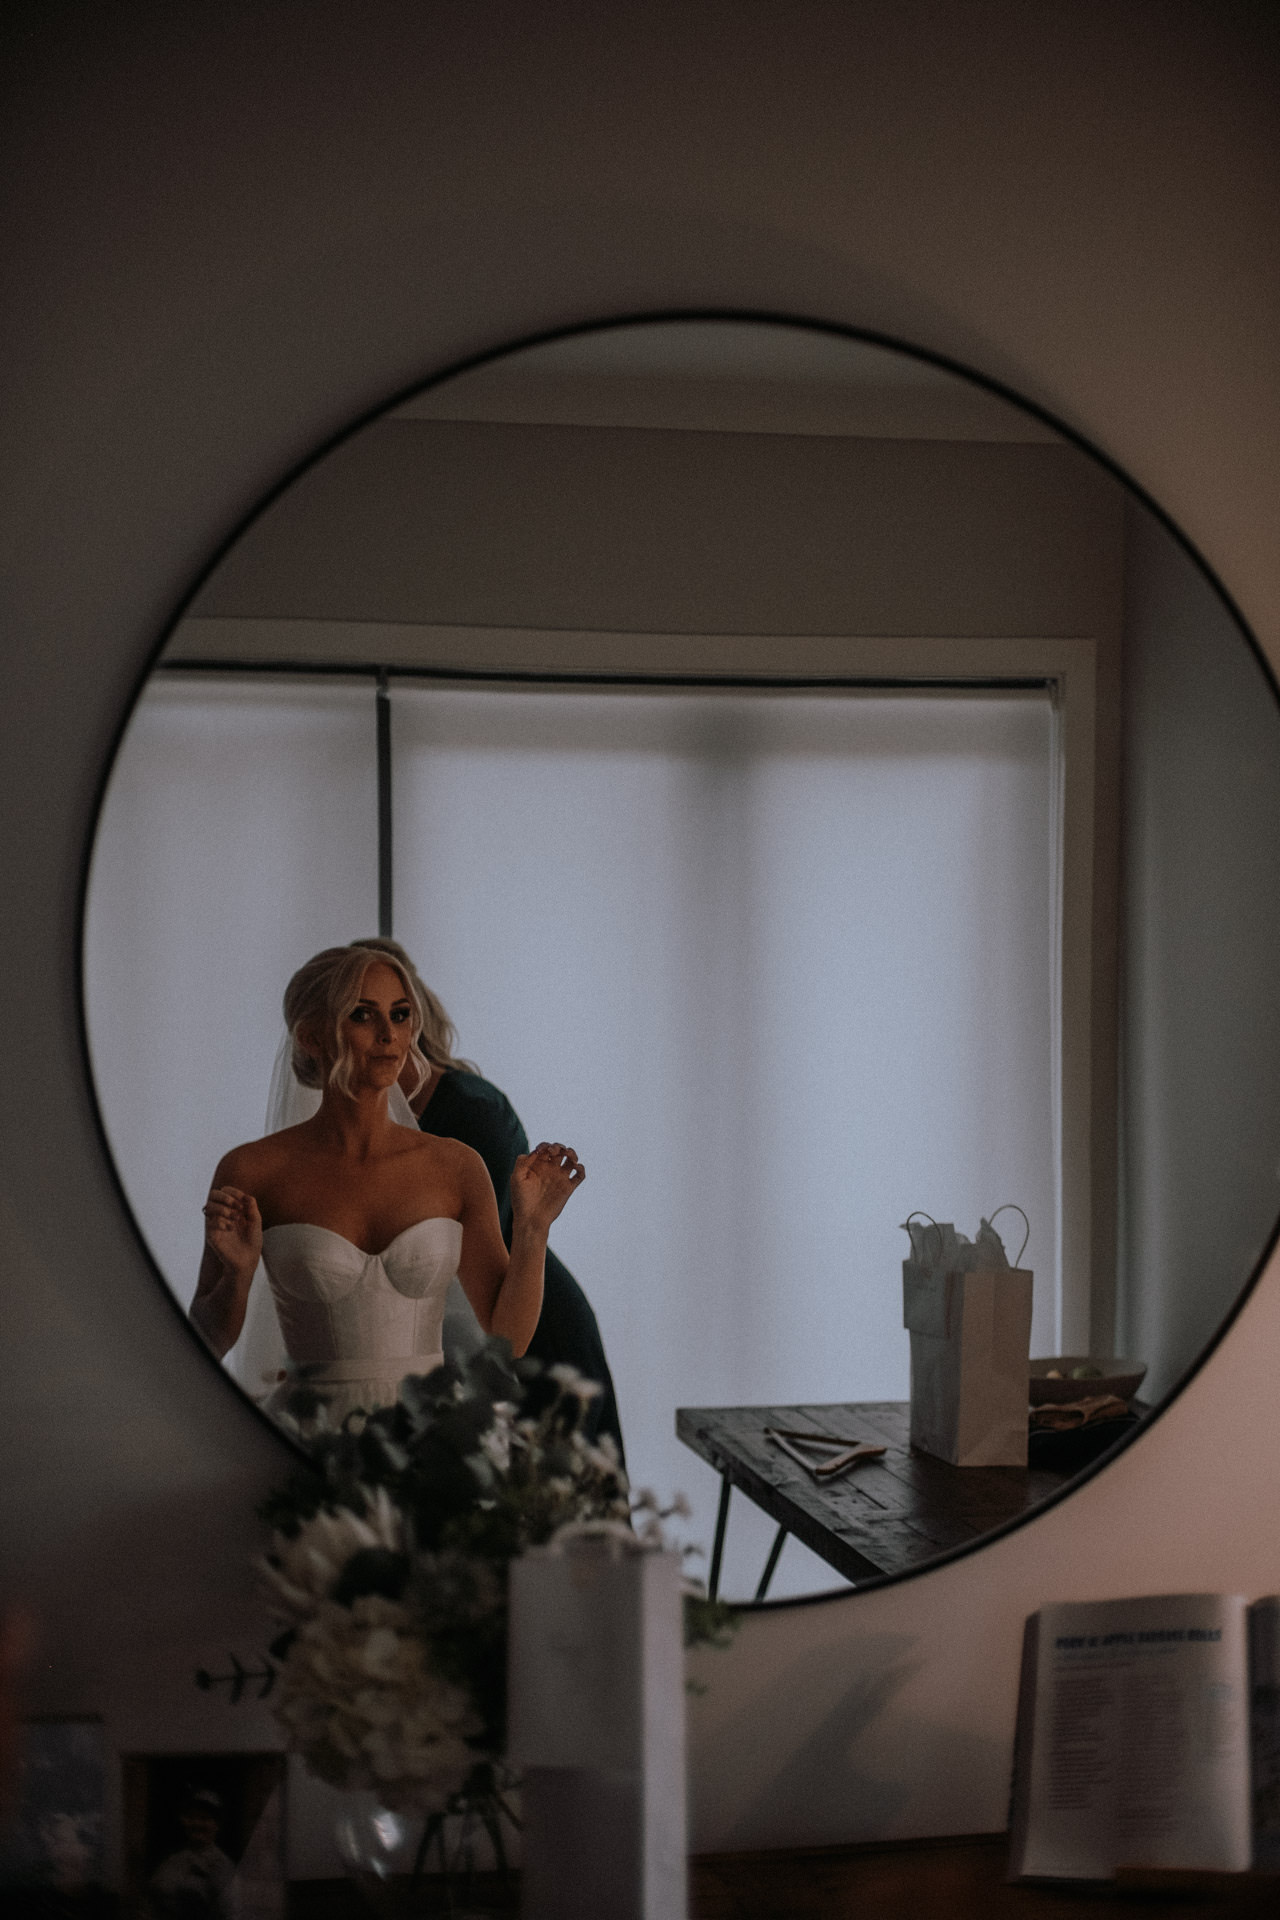 A bride having her veil fitted in the mirror